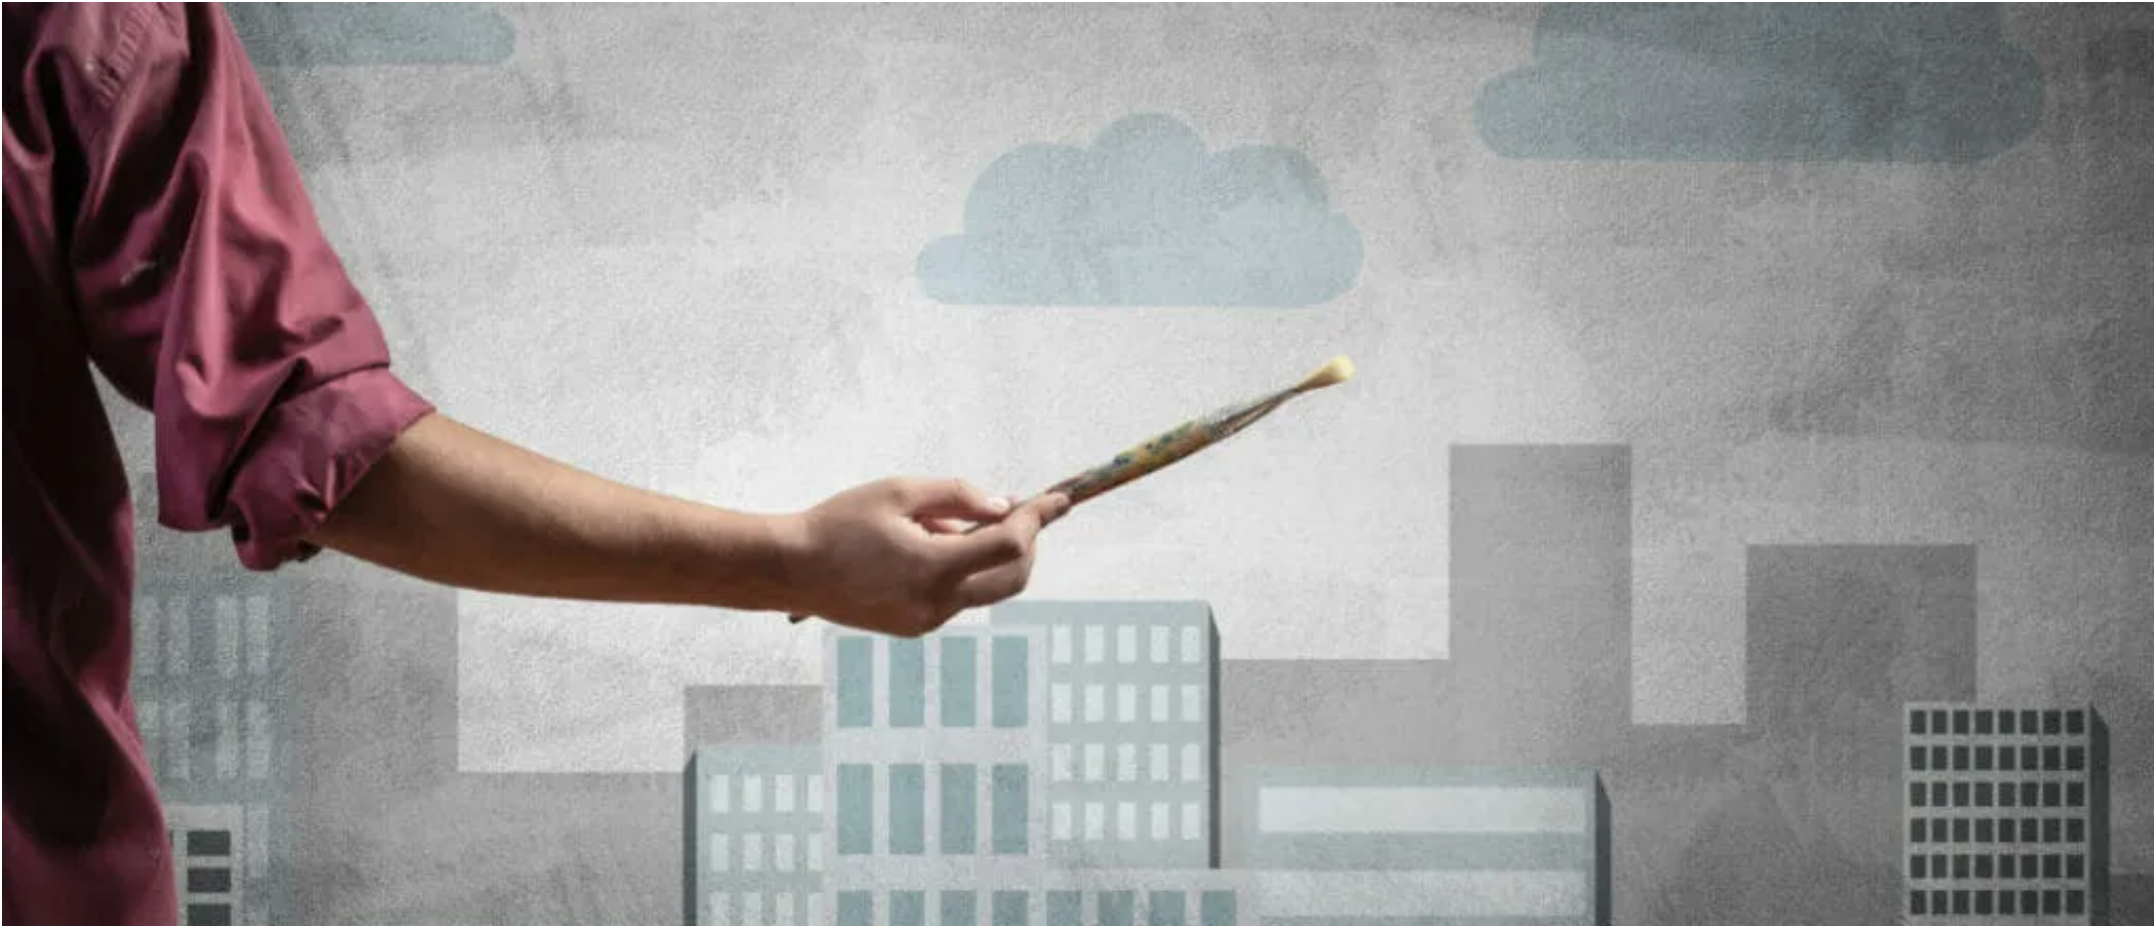 How can big tech boost cloud talent and improve diversity at the same time?